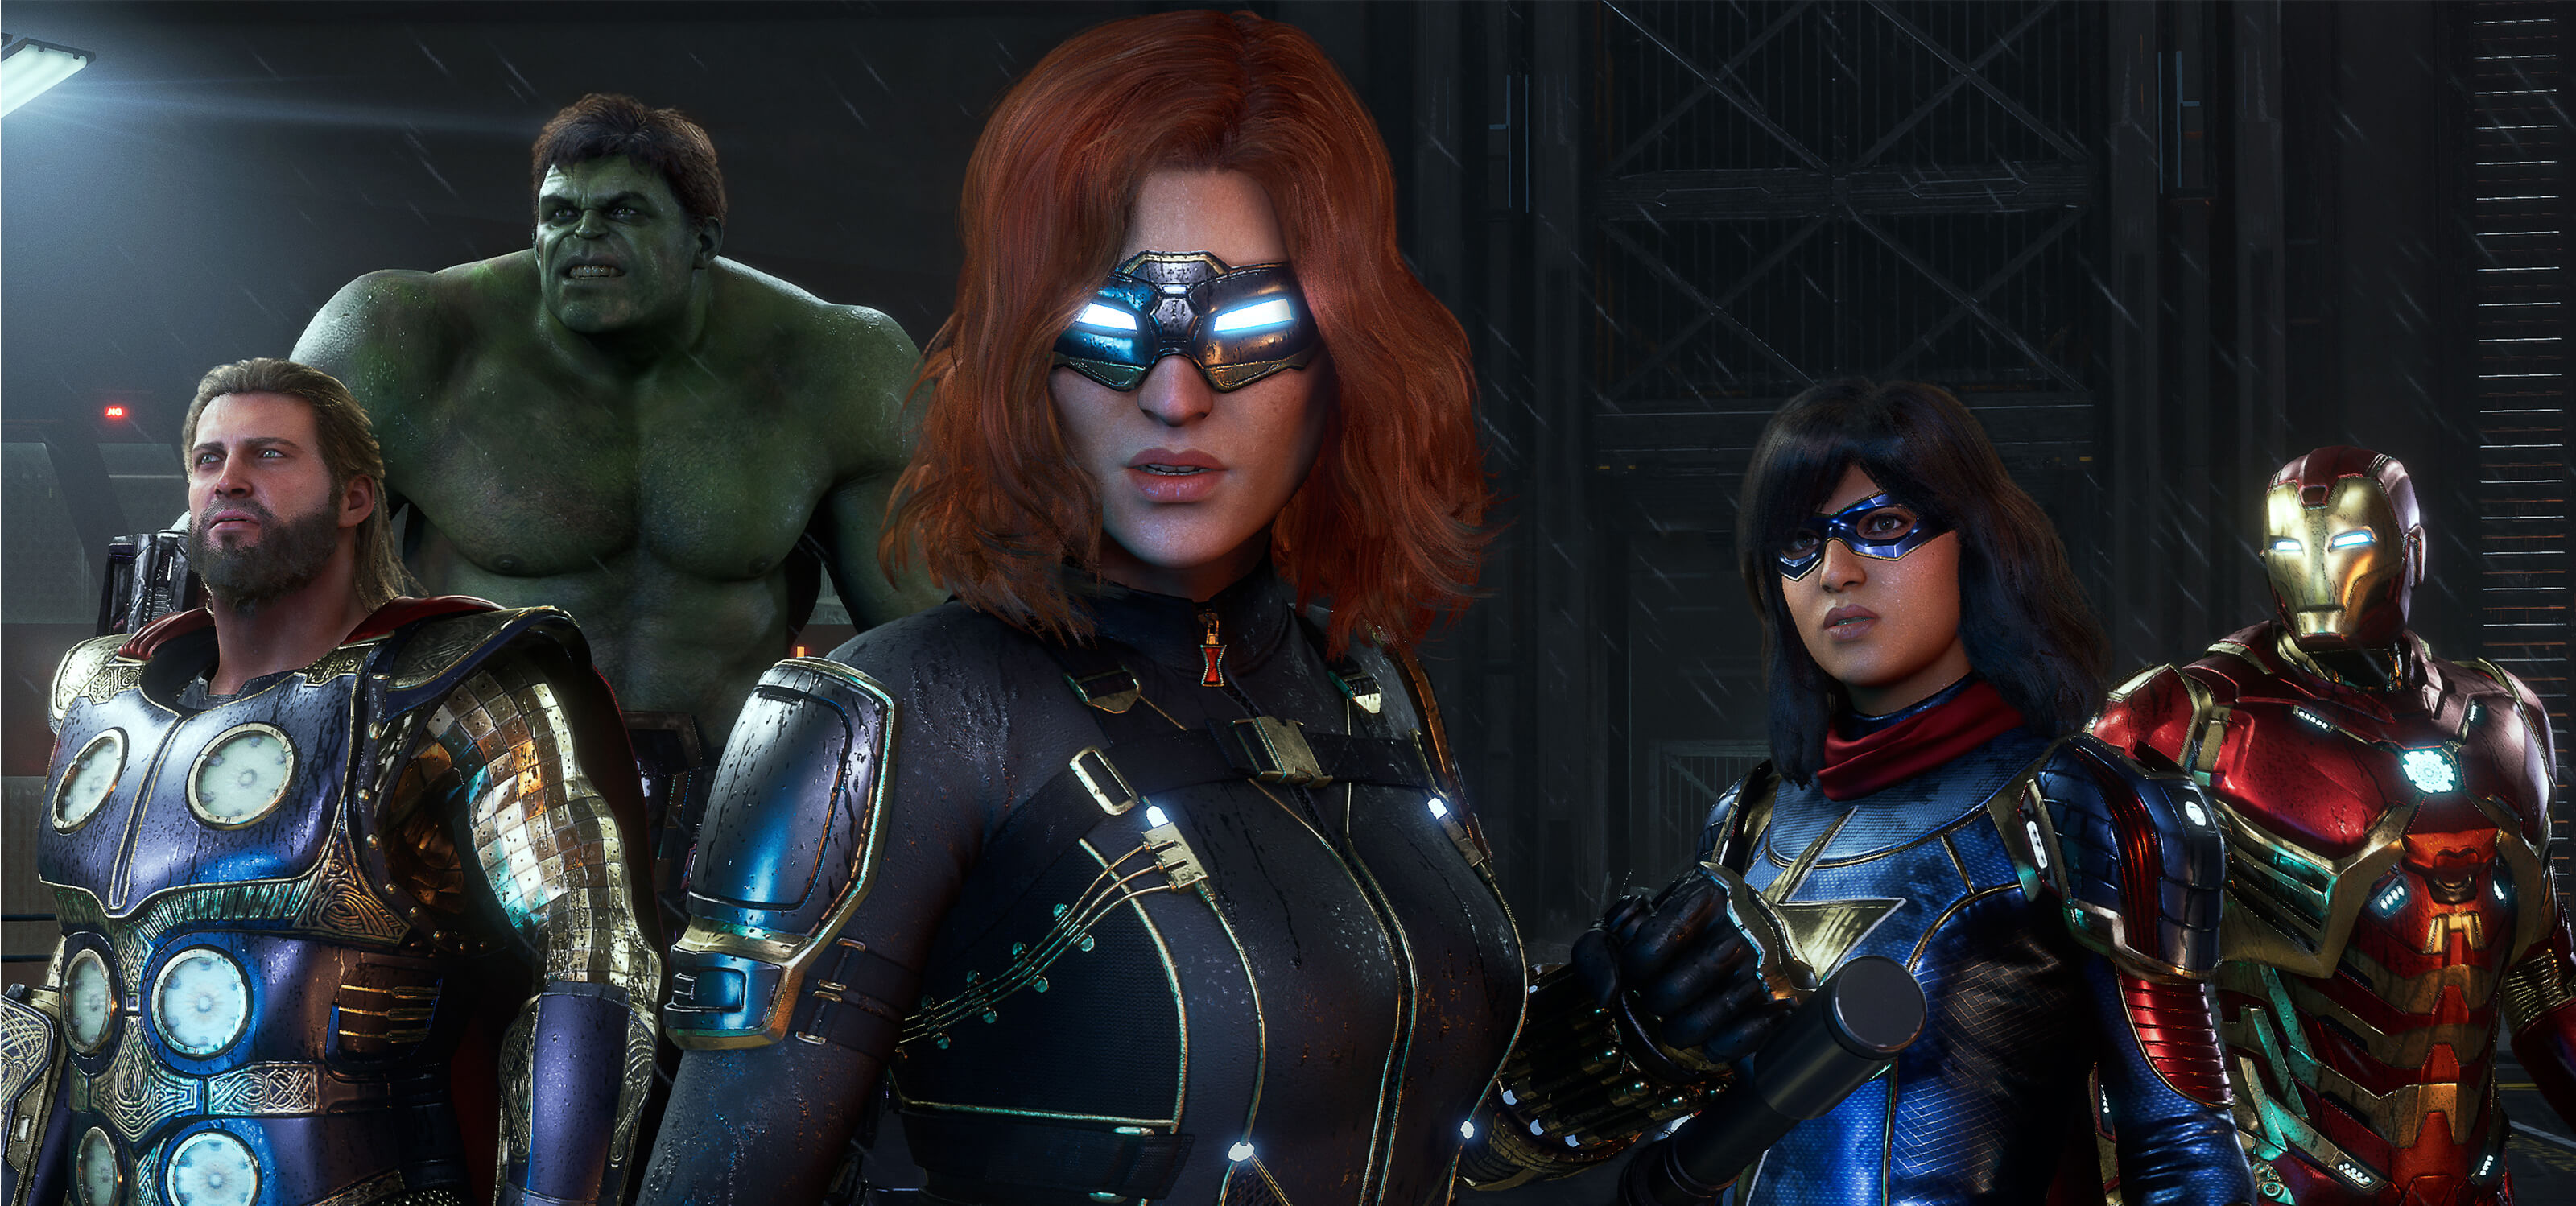 Thor, The Hulk, Black Widow, Ms. Marvel, and Iron Man stand side by side in a screenshot from Marvel's Avengers